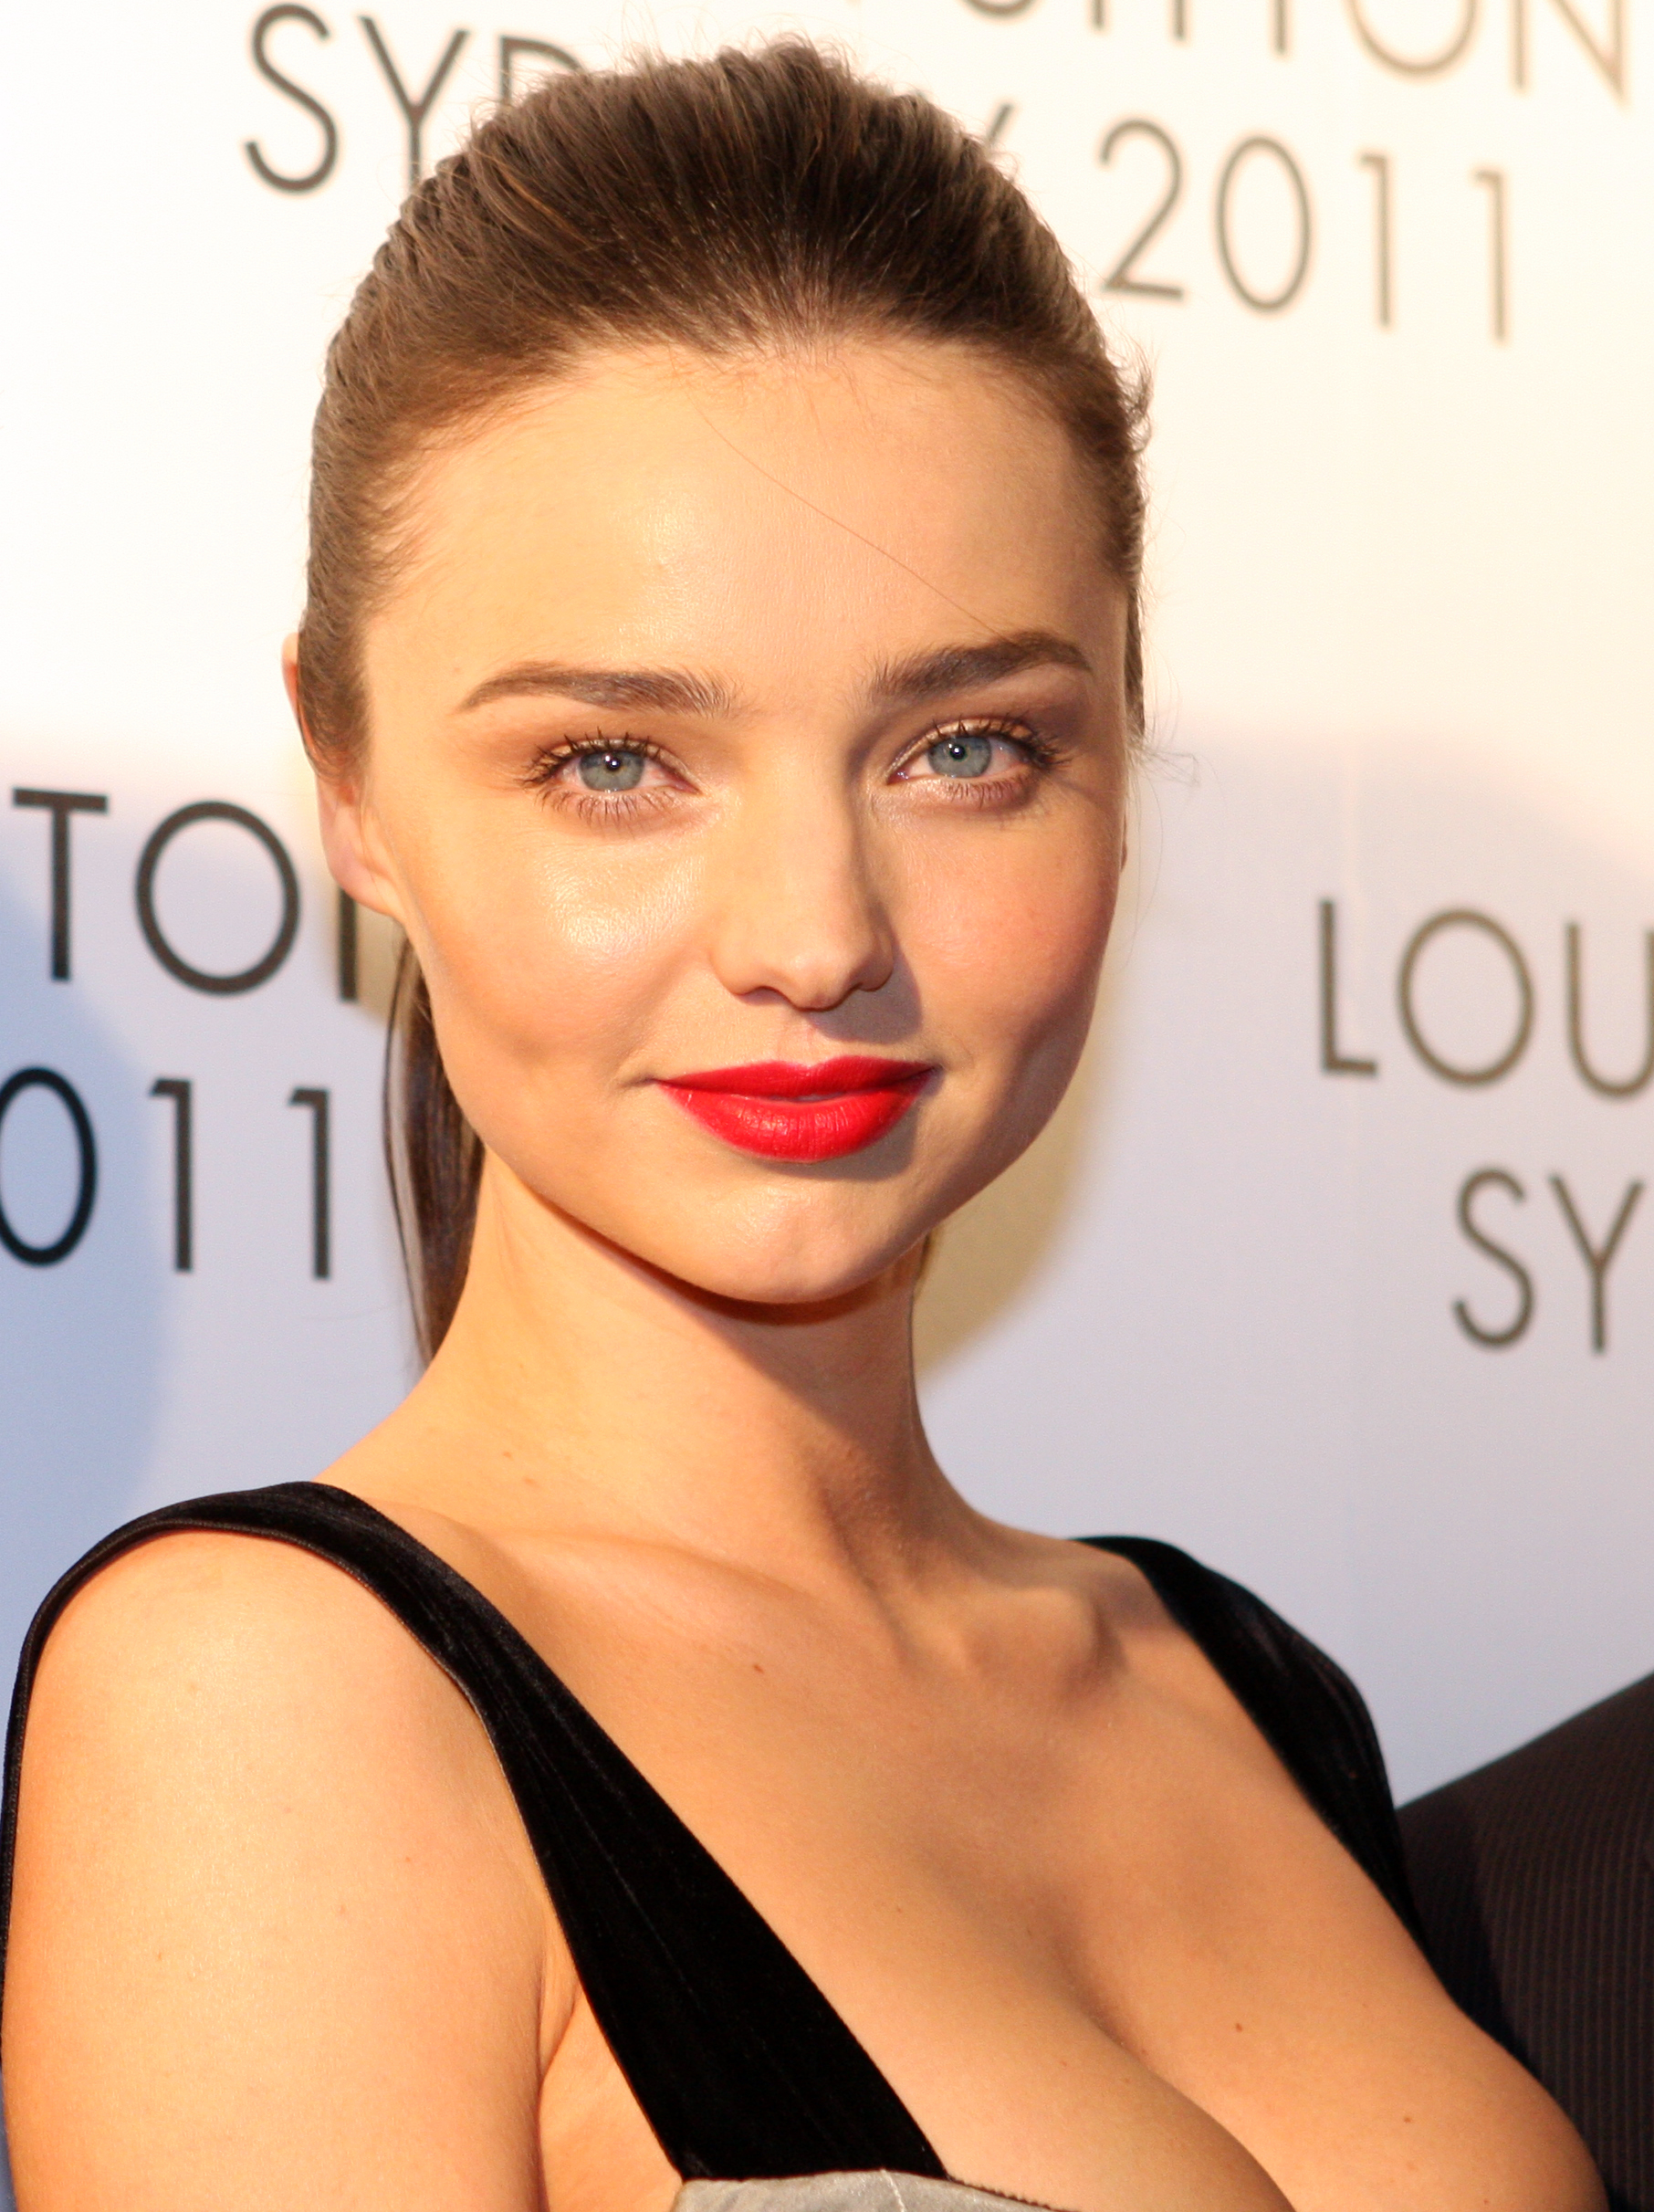 Description Miranda Kerr, 2011.jpg